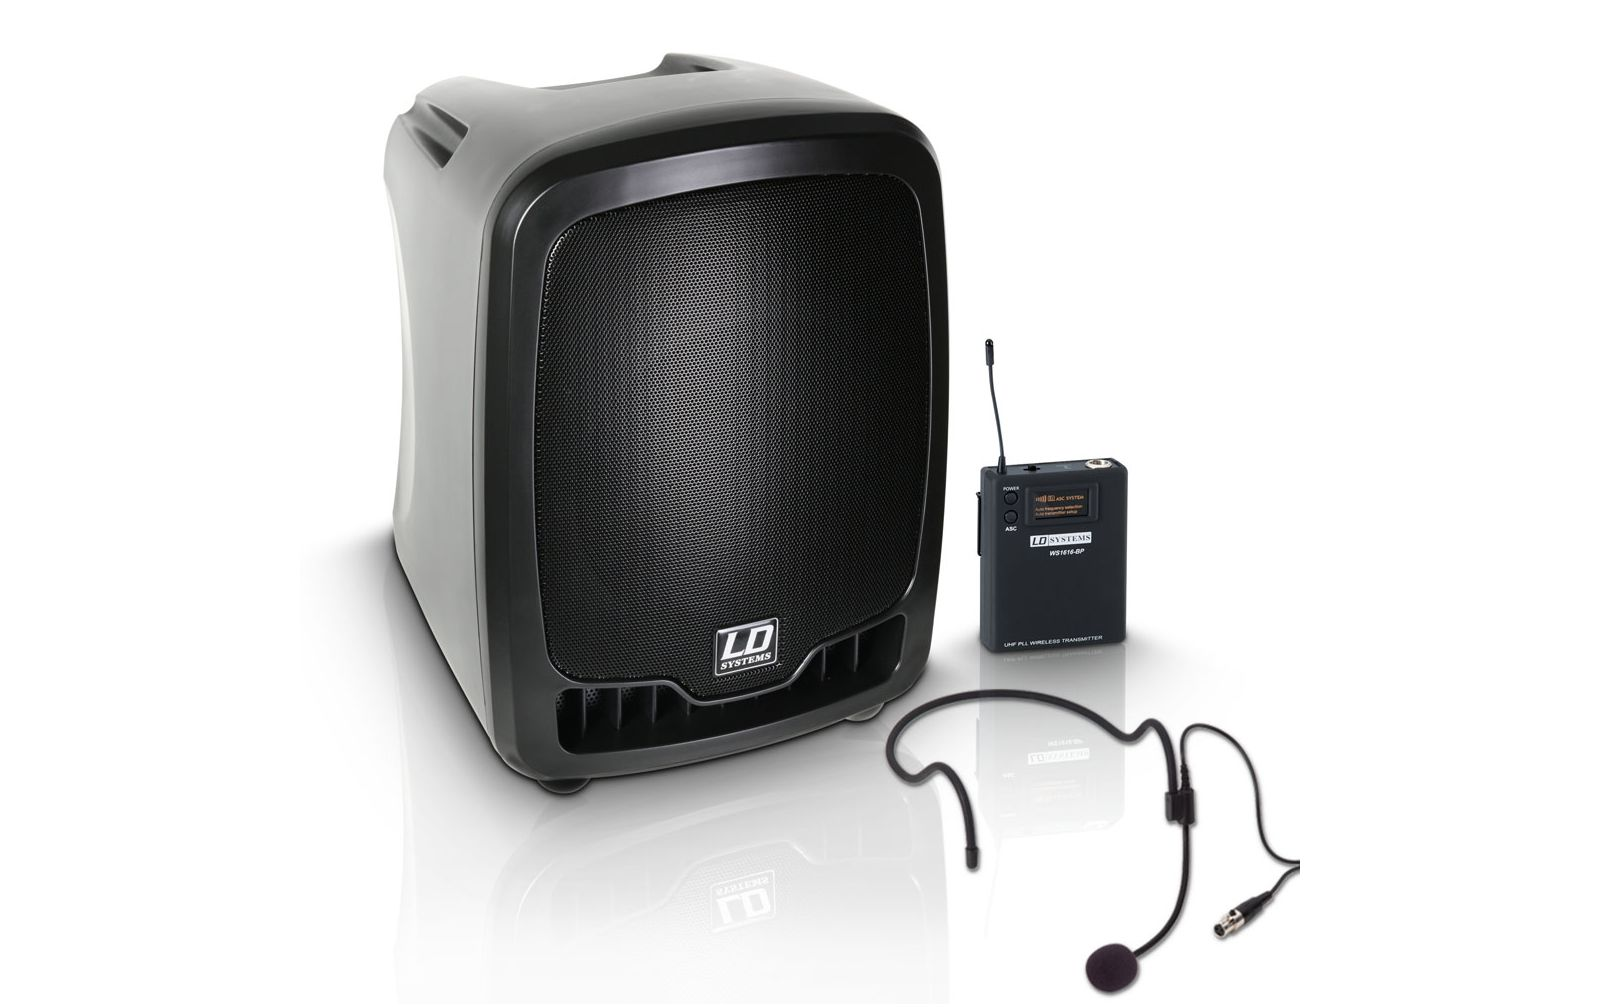 ld-systems-roadboy-65-portables-soundsystem-mit-headset-frequenzbereich-584-607-mhz